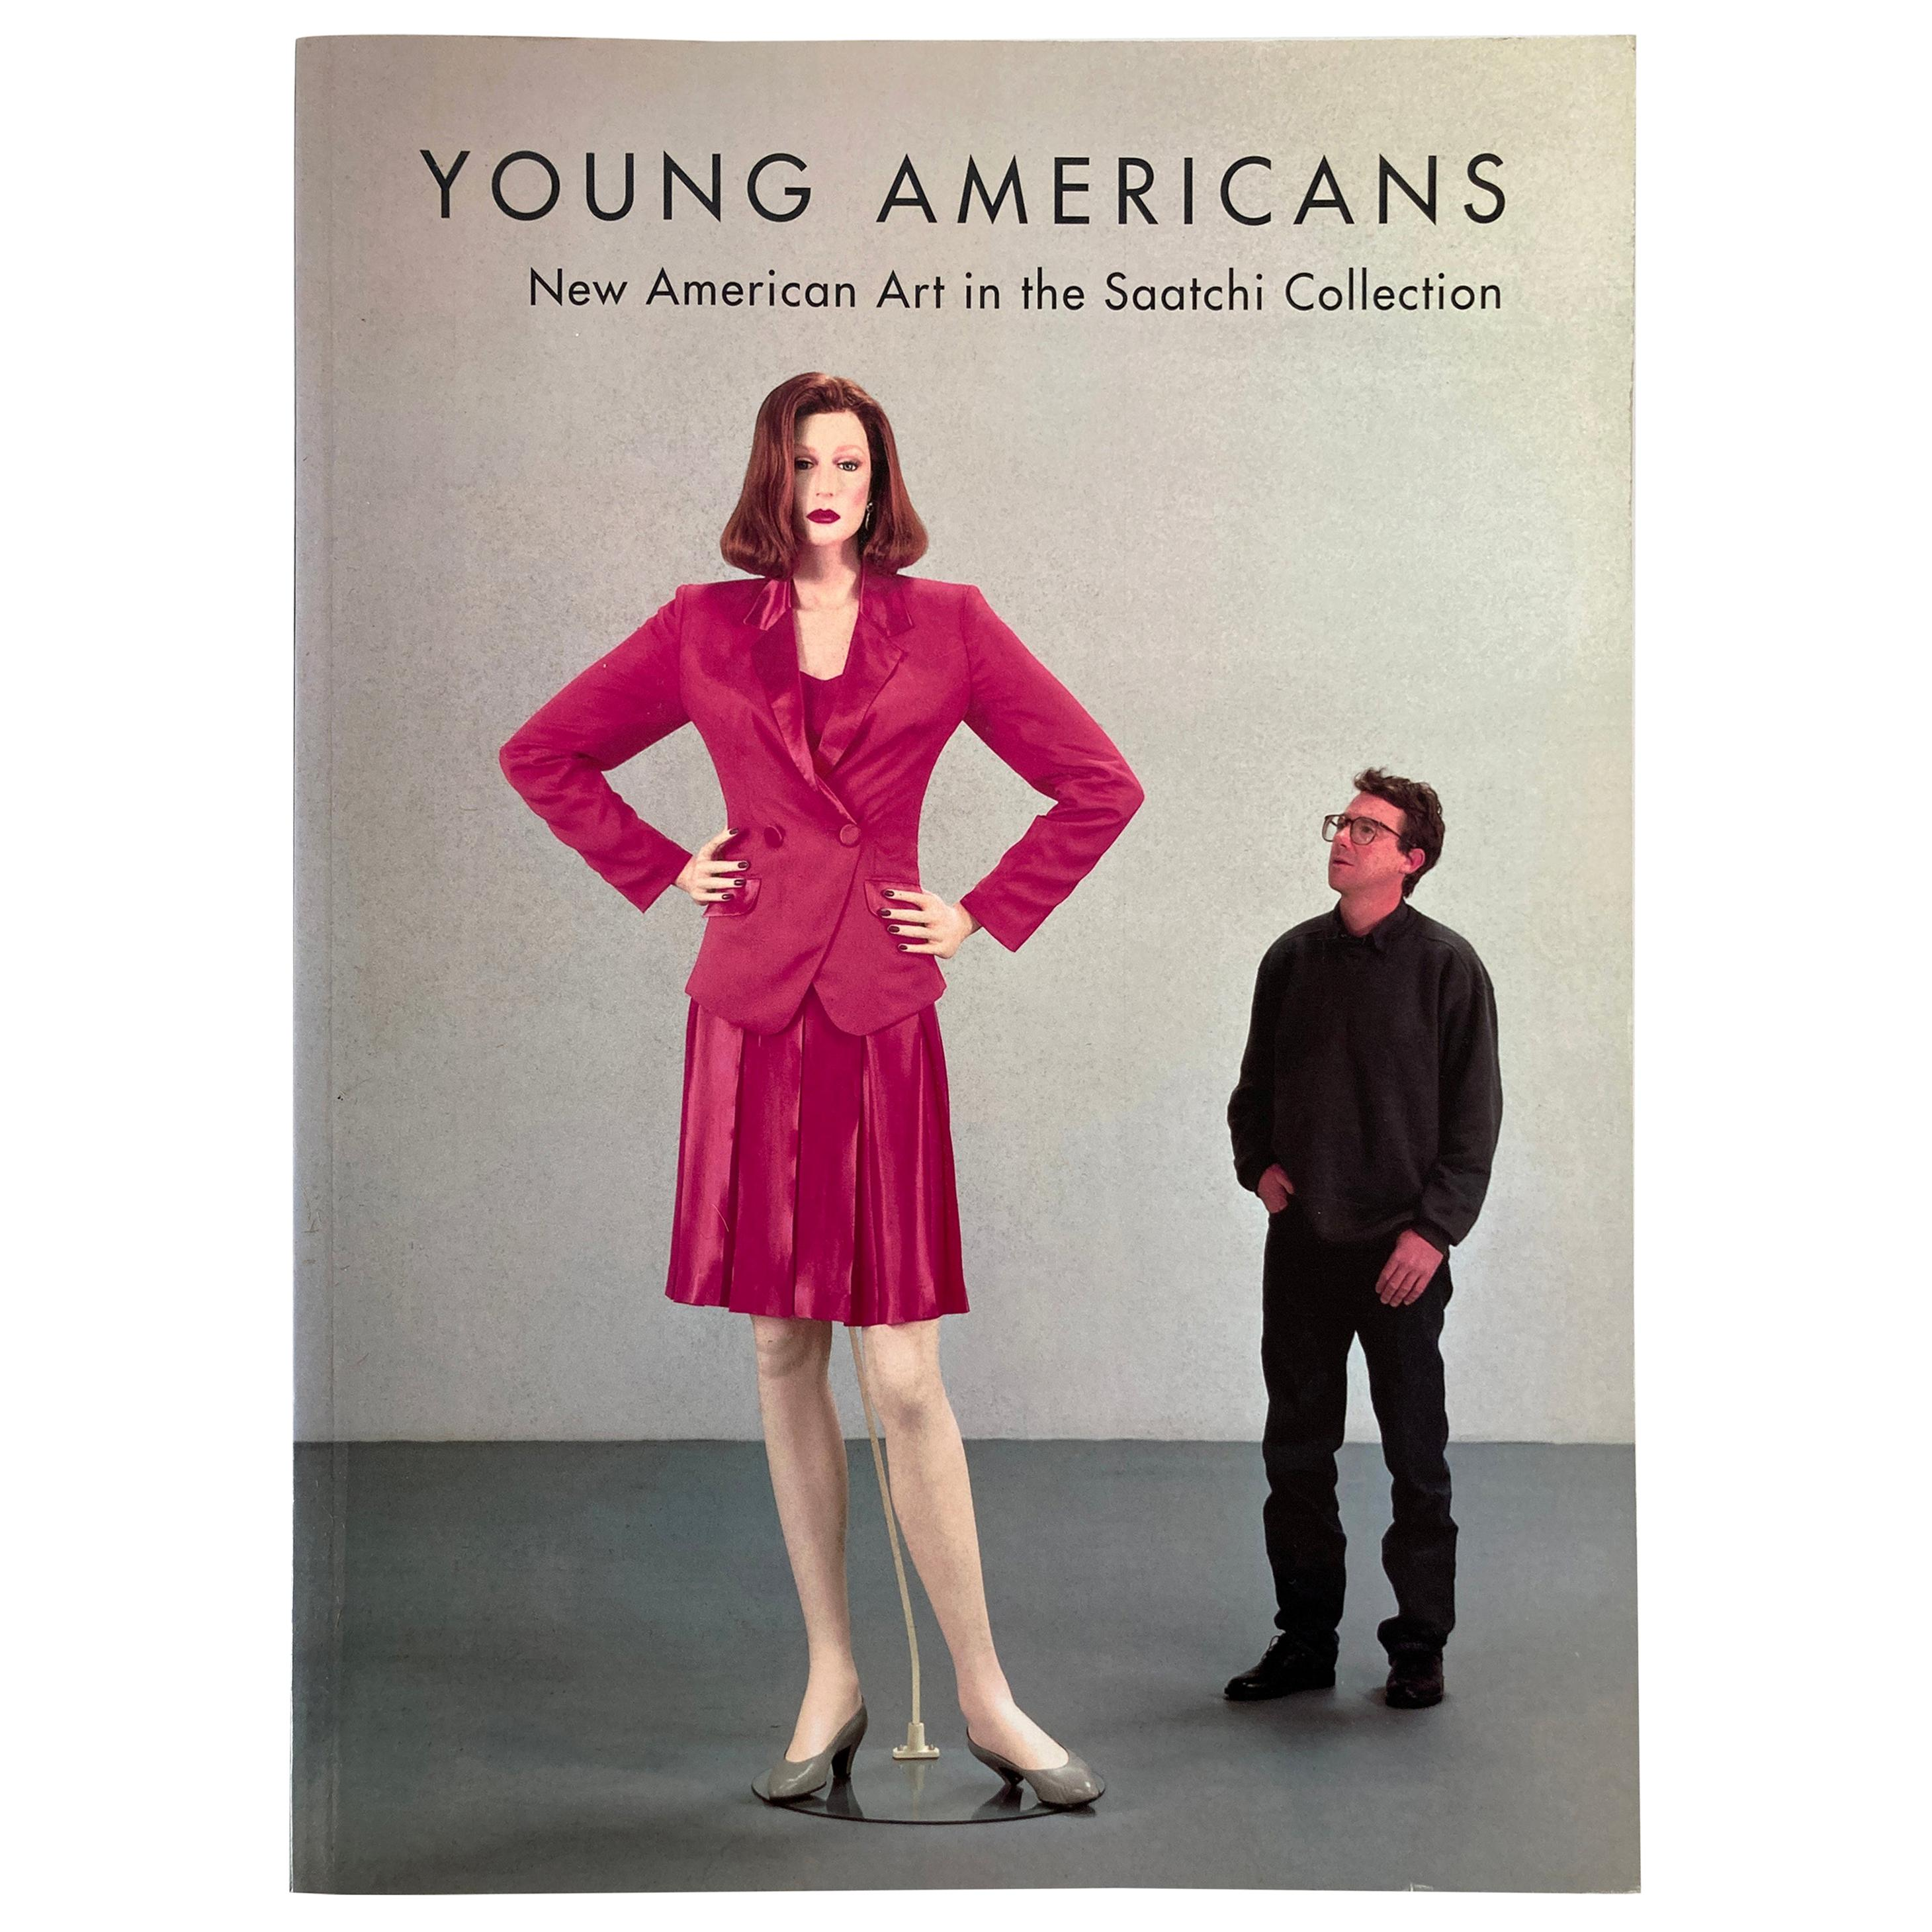 Young Americans New American Art in the Saatchi Collection